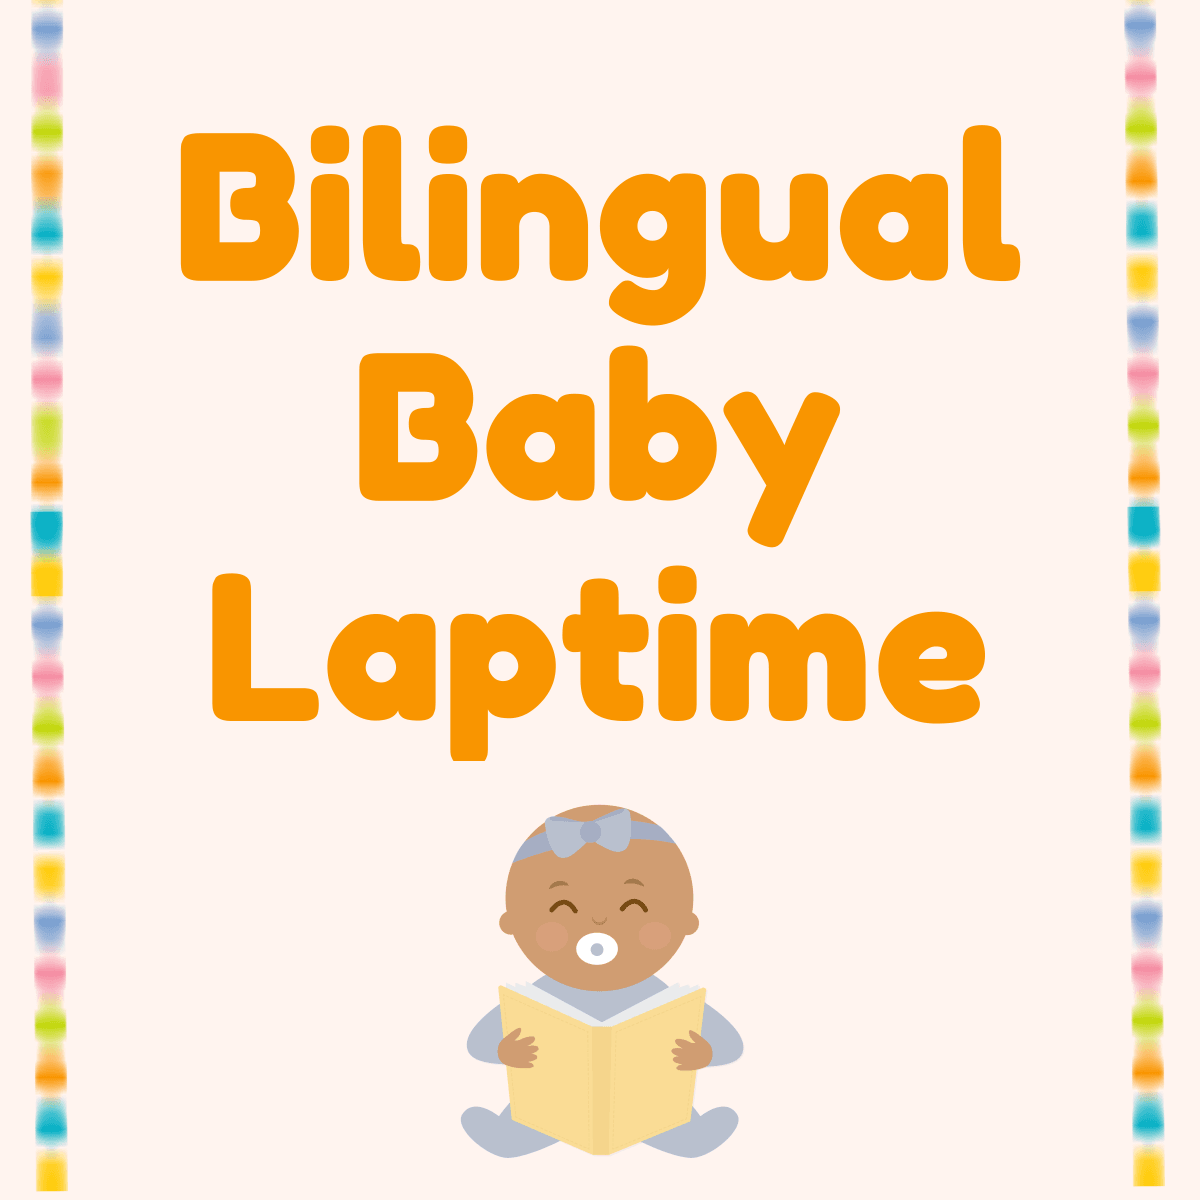 Bilingual Baby Laptime access the storytime on zoom  image of two women reading books to critters